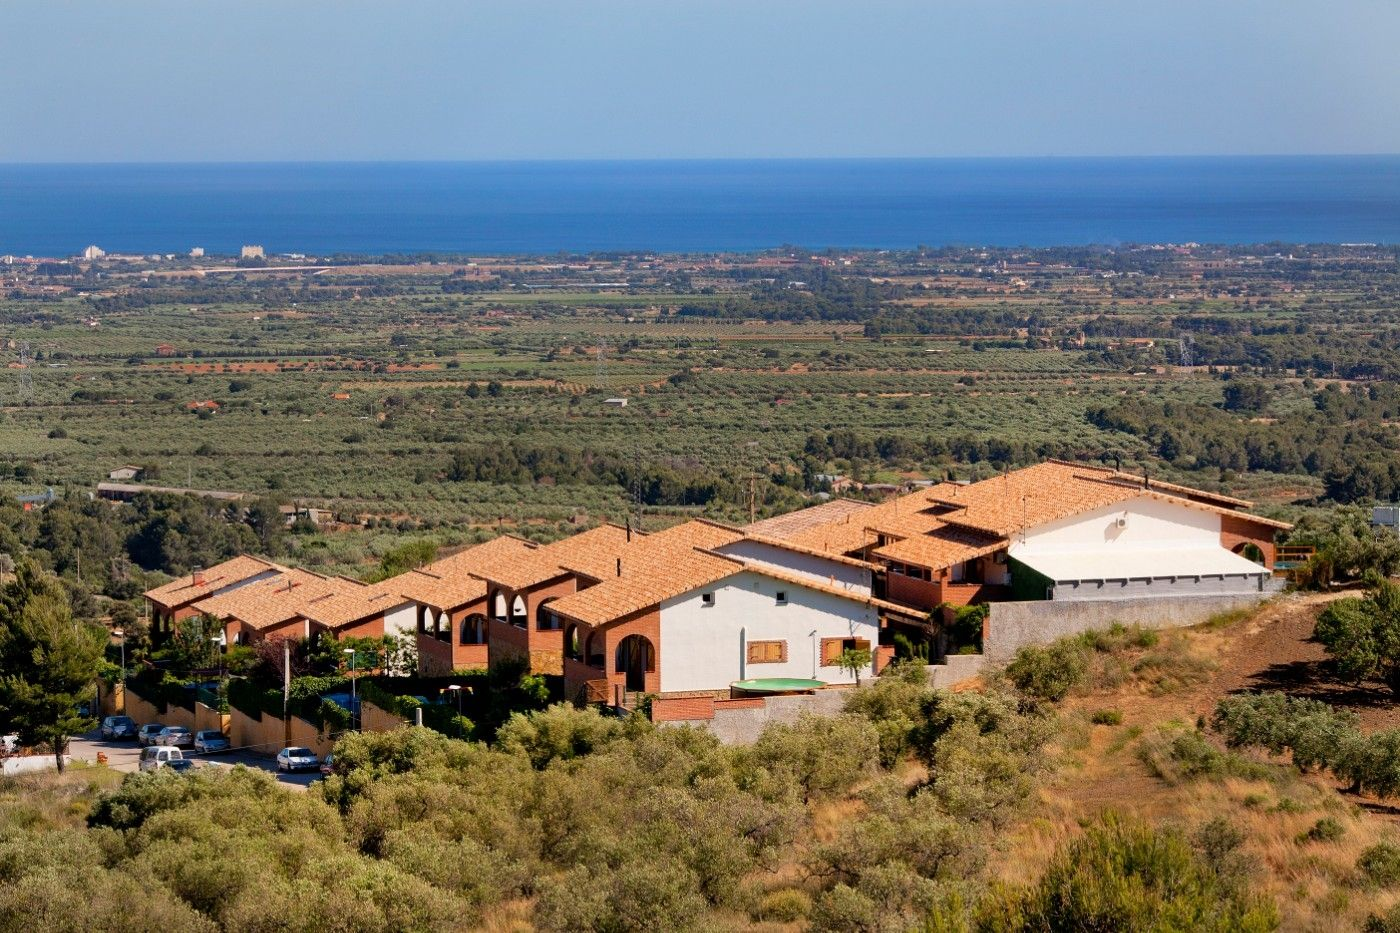 Resort in Avenida montclar, 150. 4 chalets individuales